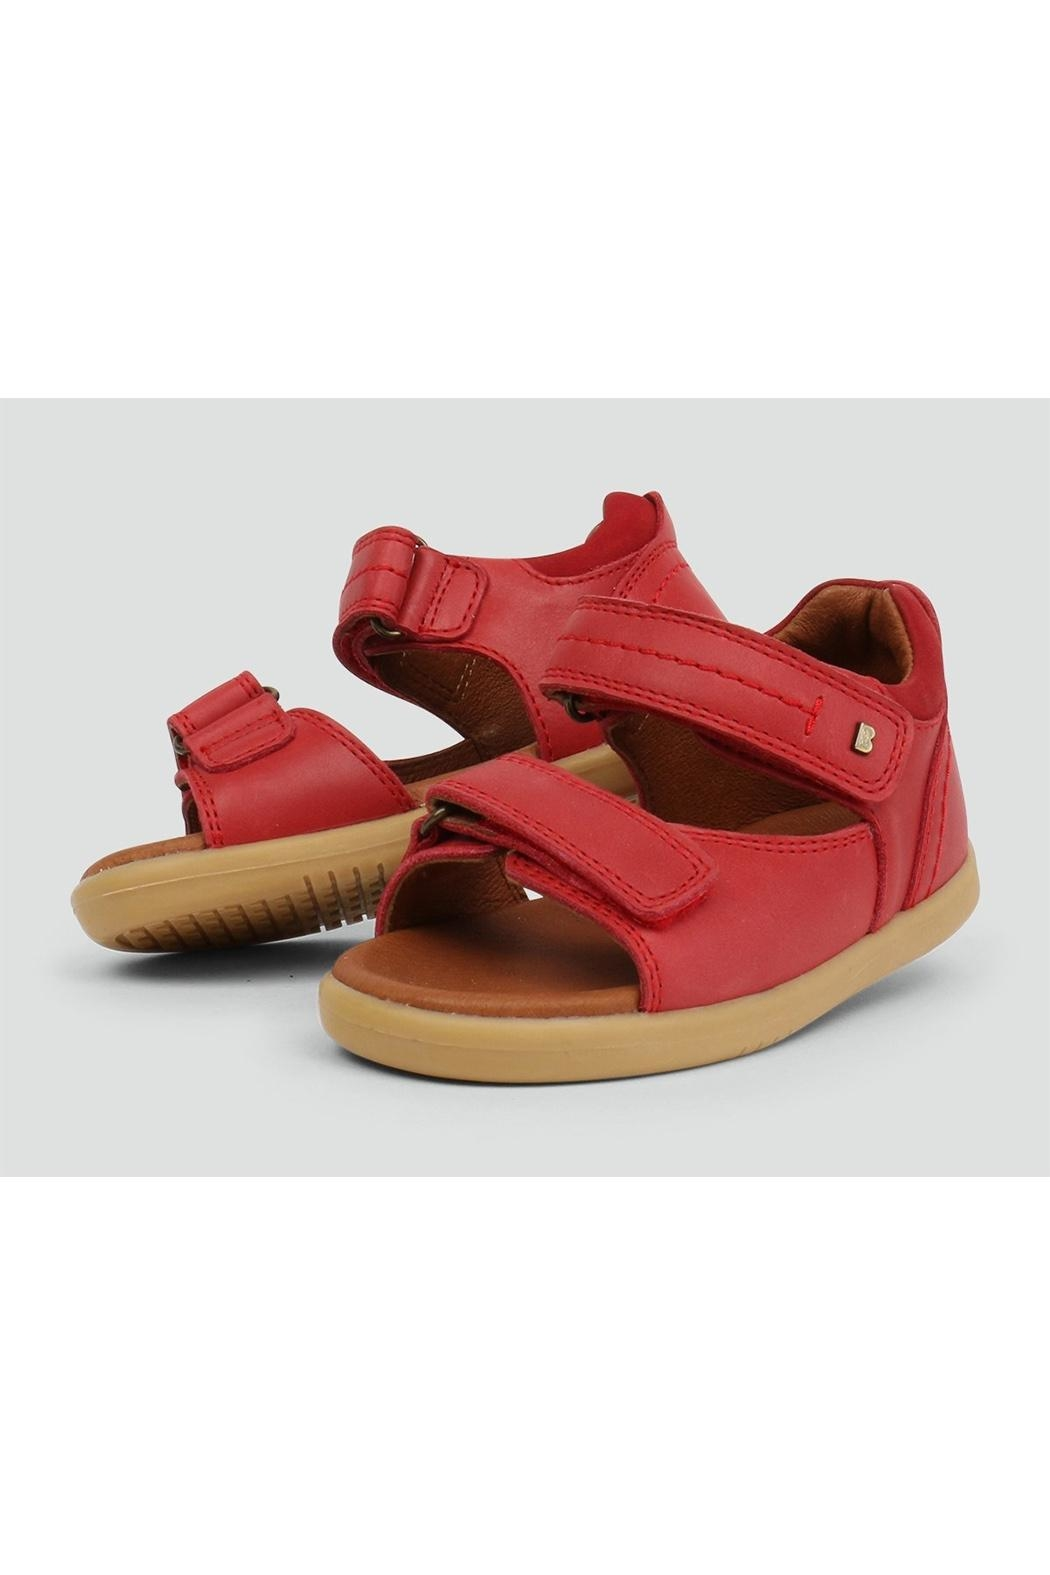 Bobux Unisex Driftwood Red-Sandals - Main Image